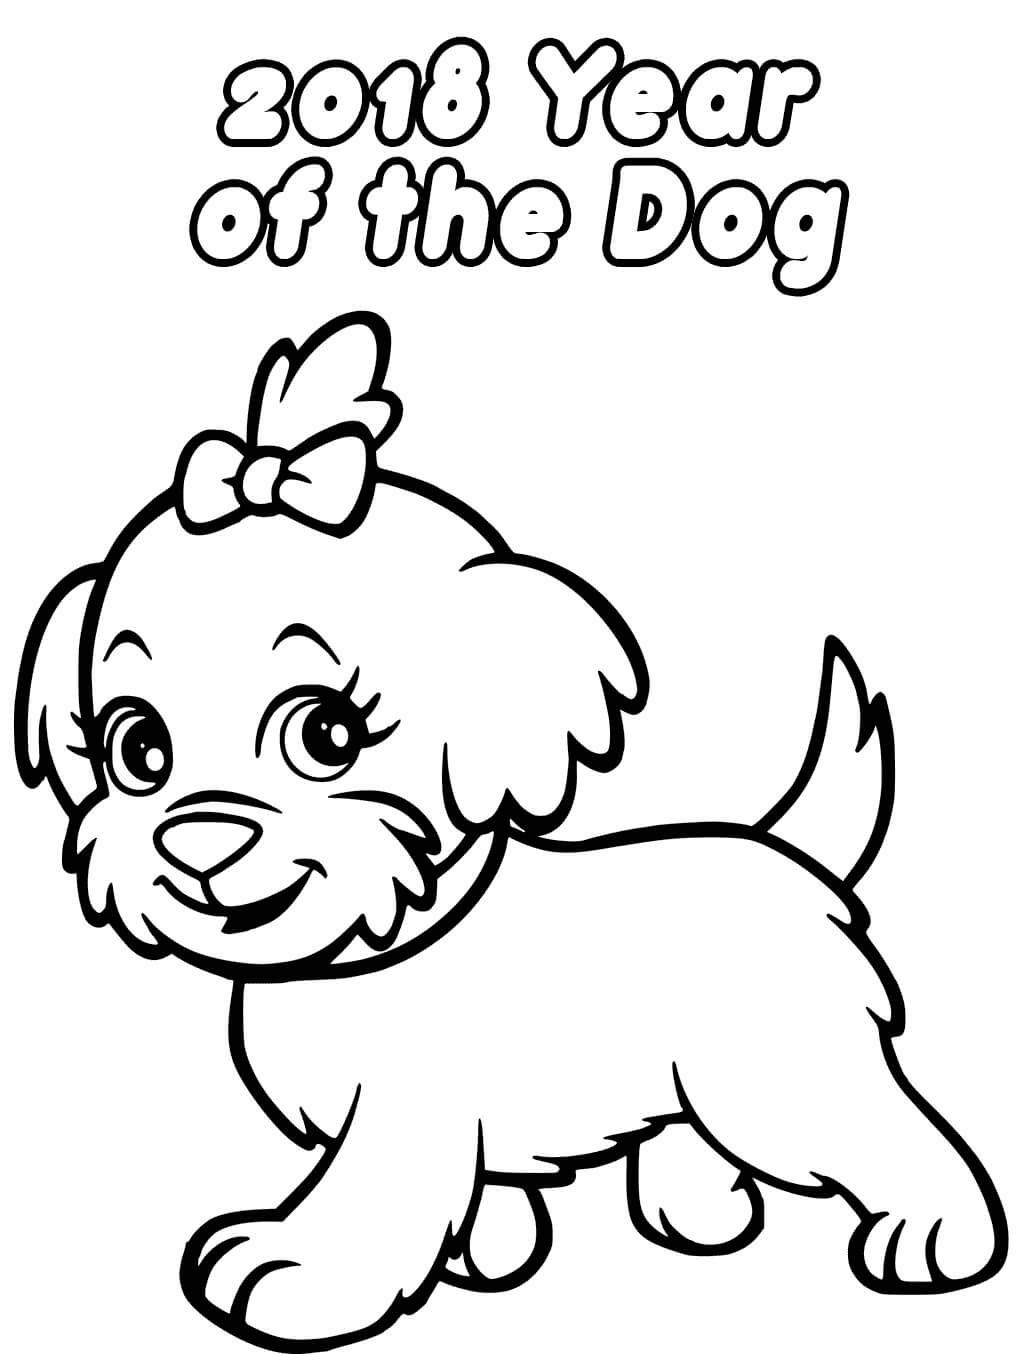 Chinese Year Of The Dog 2018 Coloring Page Puppy Coloring Pages Dog Coloring Page Cartoon Coloring Pages